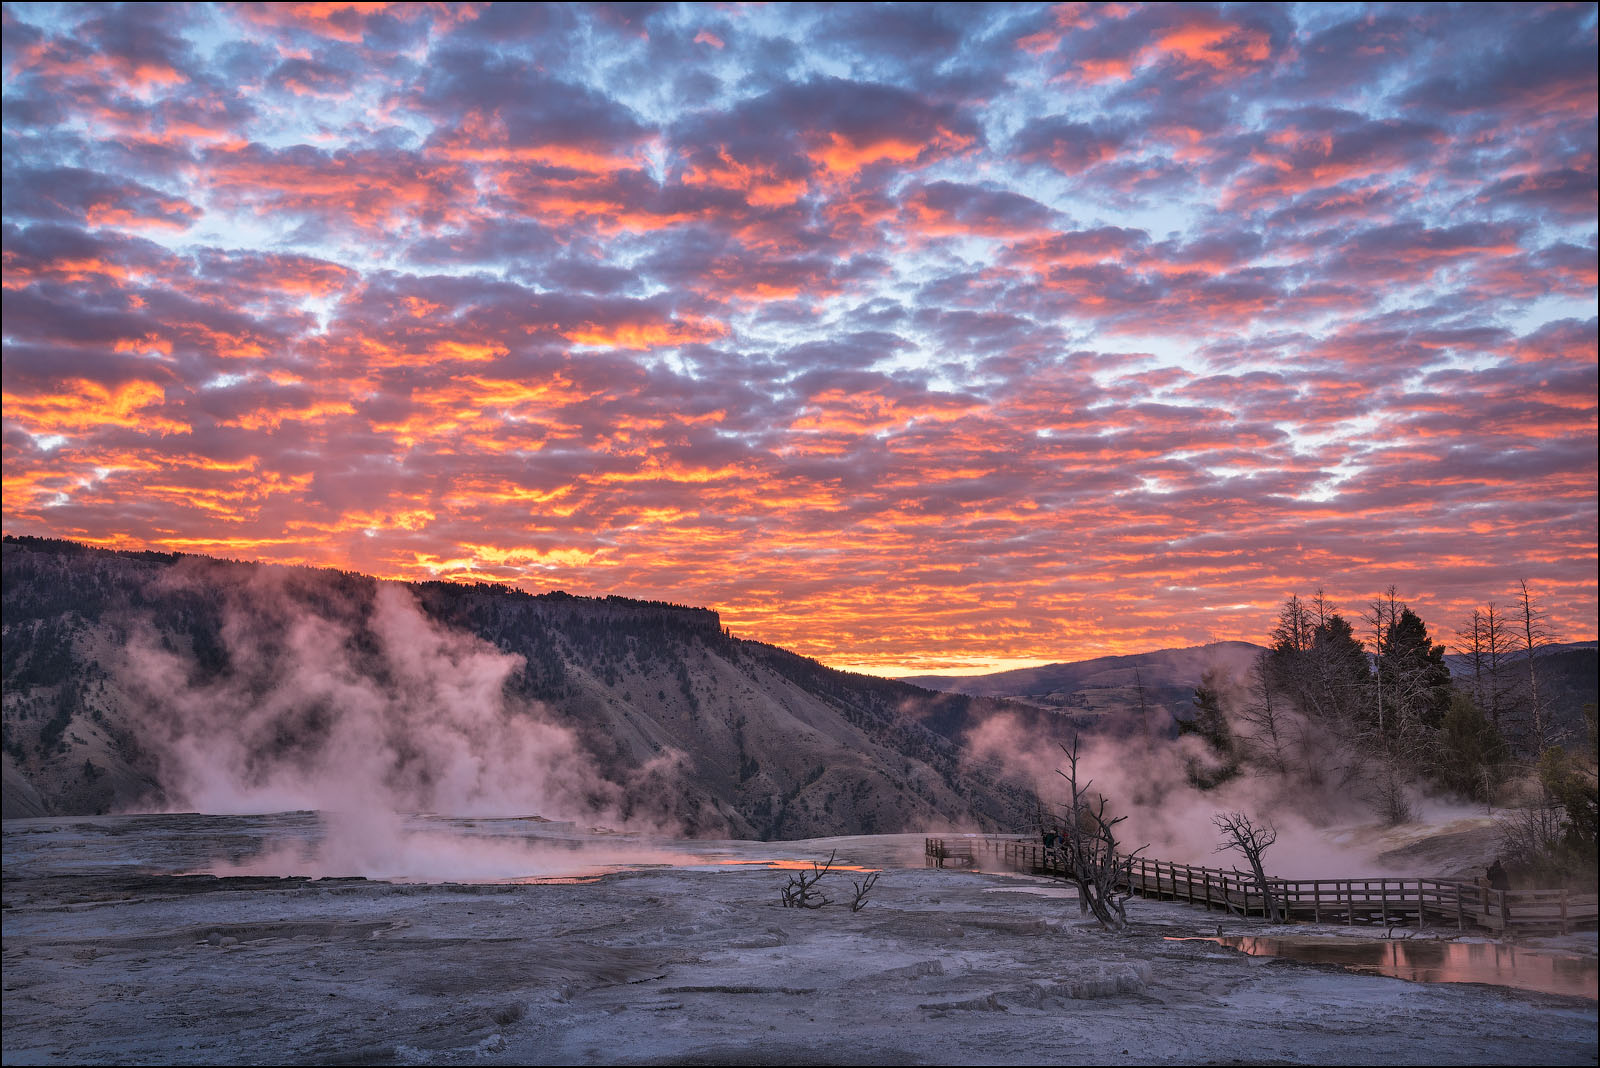 Sunrise clouds at Upper Mammoth Terrace, Yellowstone National Park, Wyoming.